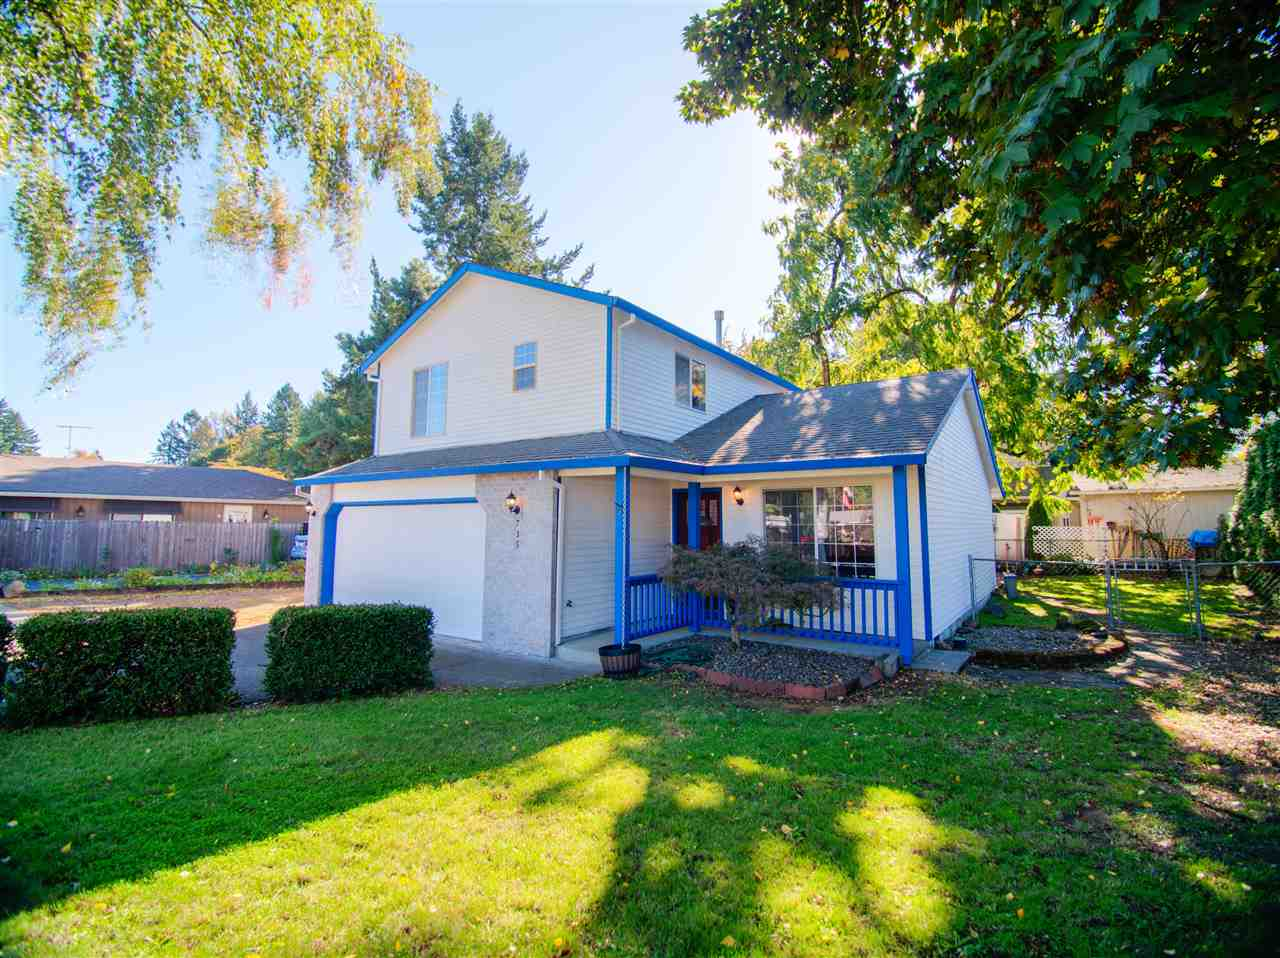 735 NE Territorial Rd, Canby in Clackamas County, OR 97013 Home for Sale